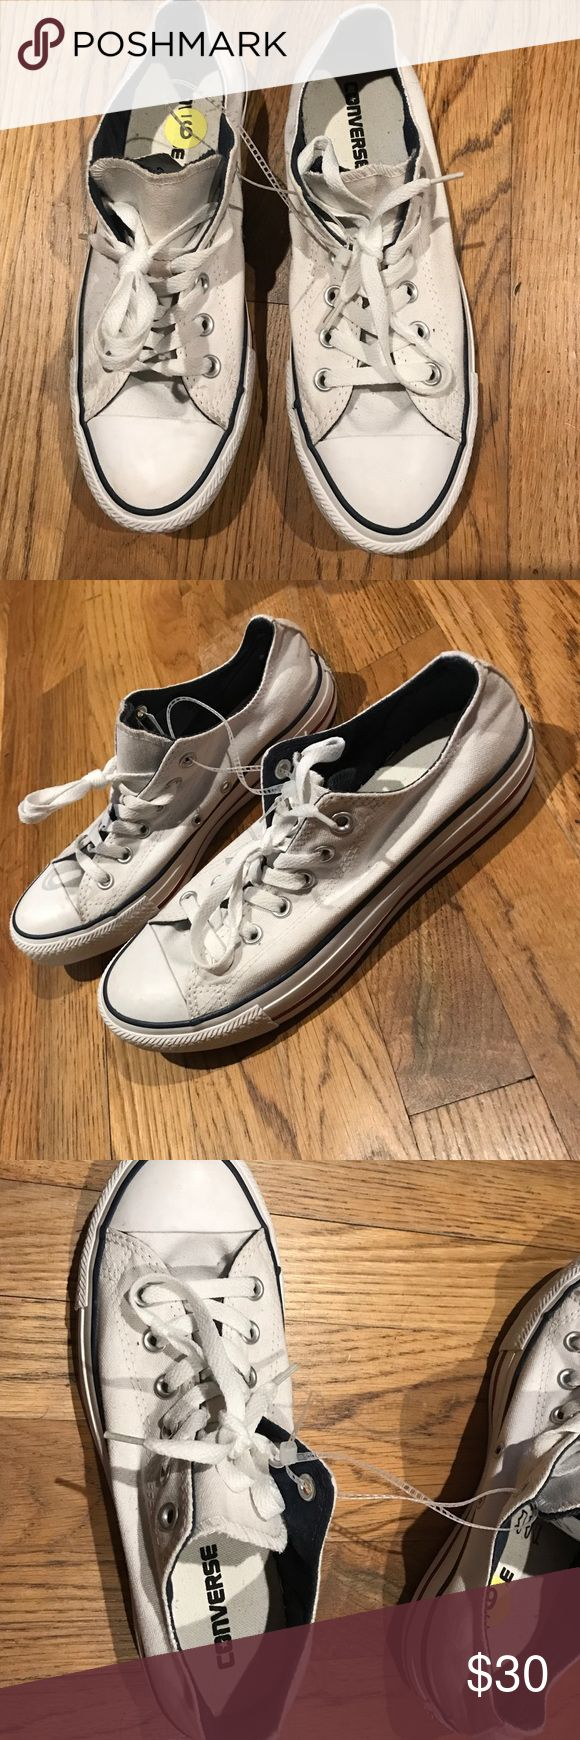 Converse white low tops Converse white low tops 👟 never worn. Excellent condition. Size 7 in men. Size 9 in women Converse Shoes Sneakers